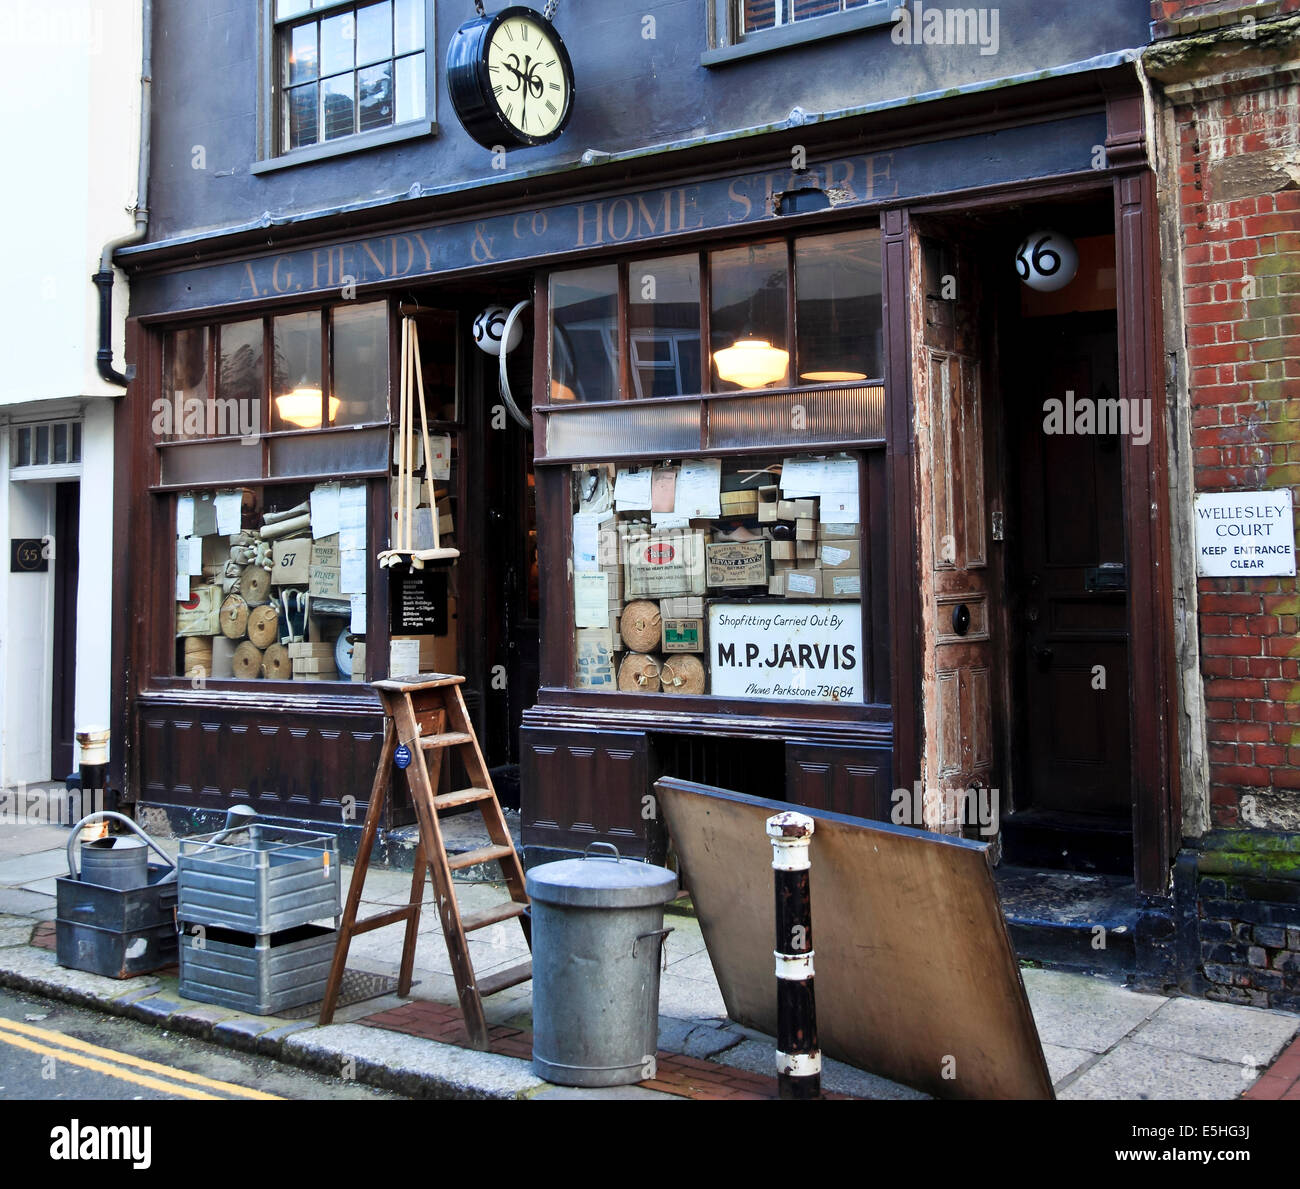 9515. Shop, High Street, Old Town, Hastings, East Sussex - Stock Image